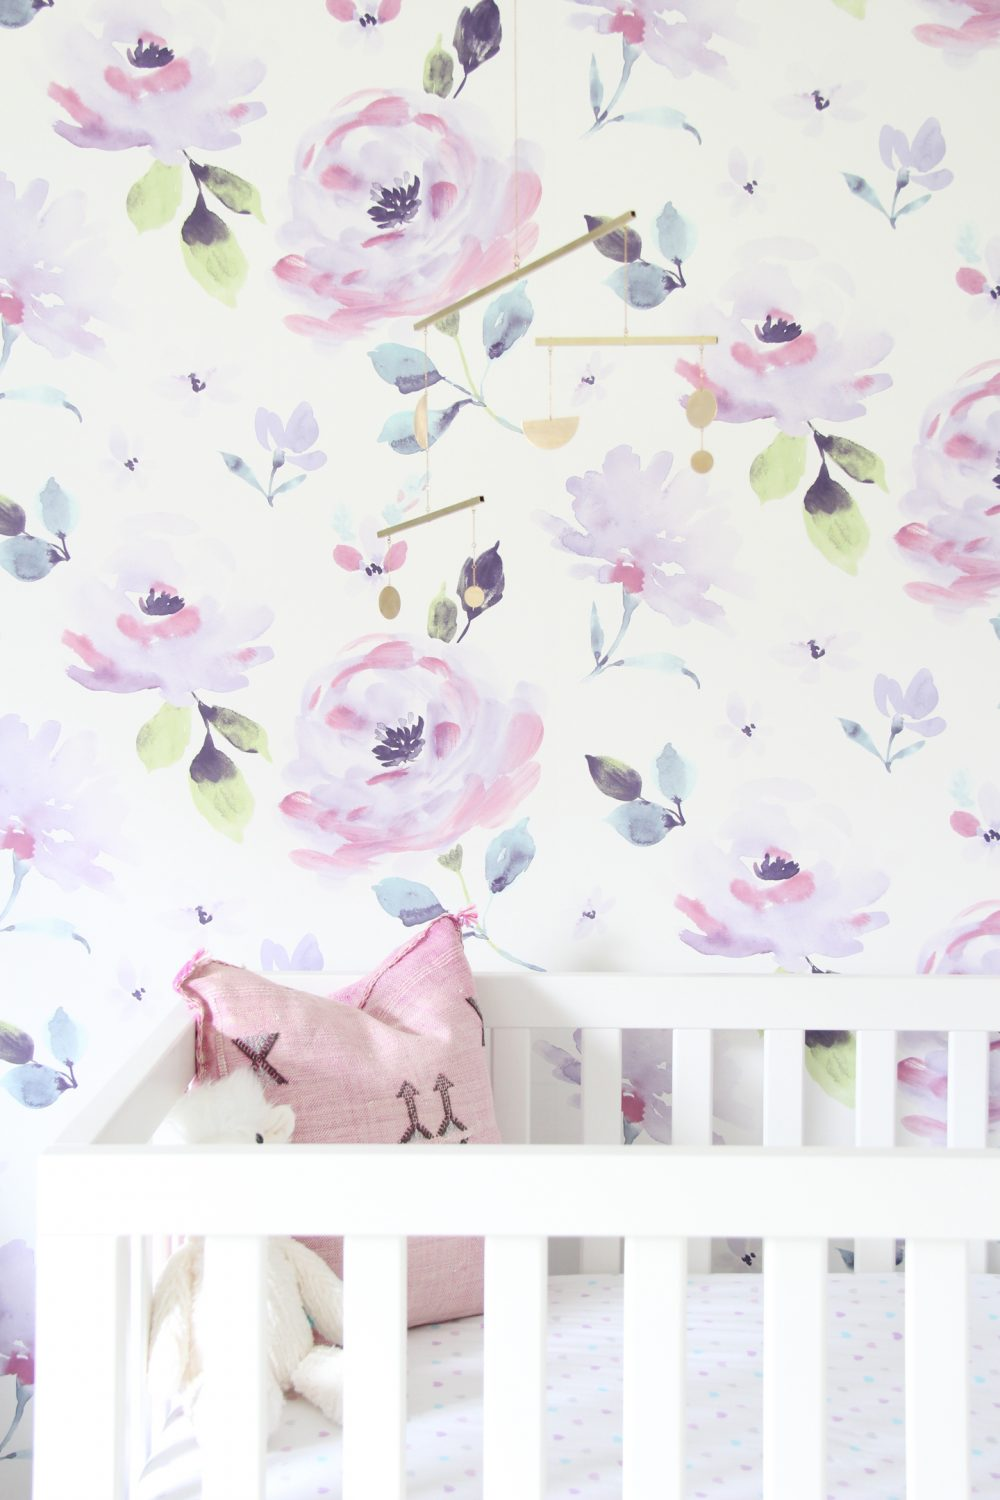 Brass mobile in baby girl purple floral  nursery | Melissa Lynch | melissalynch.com